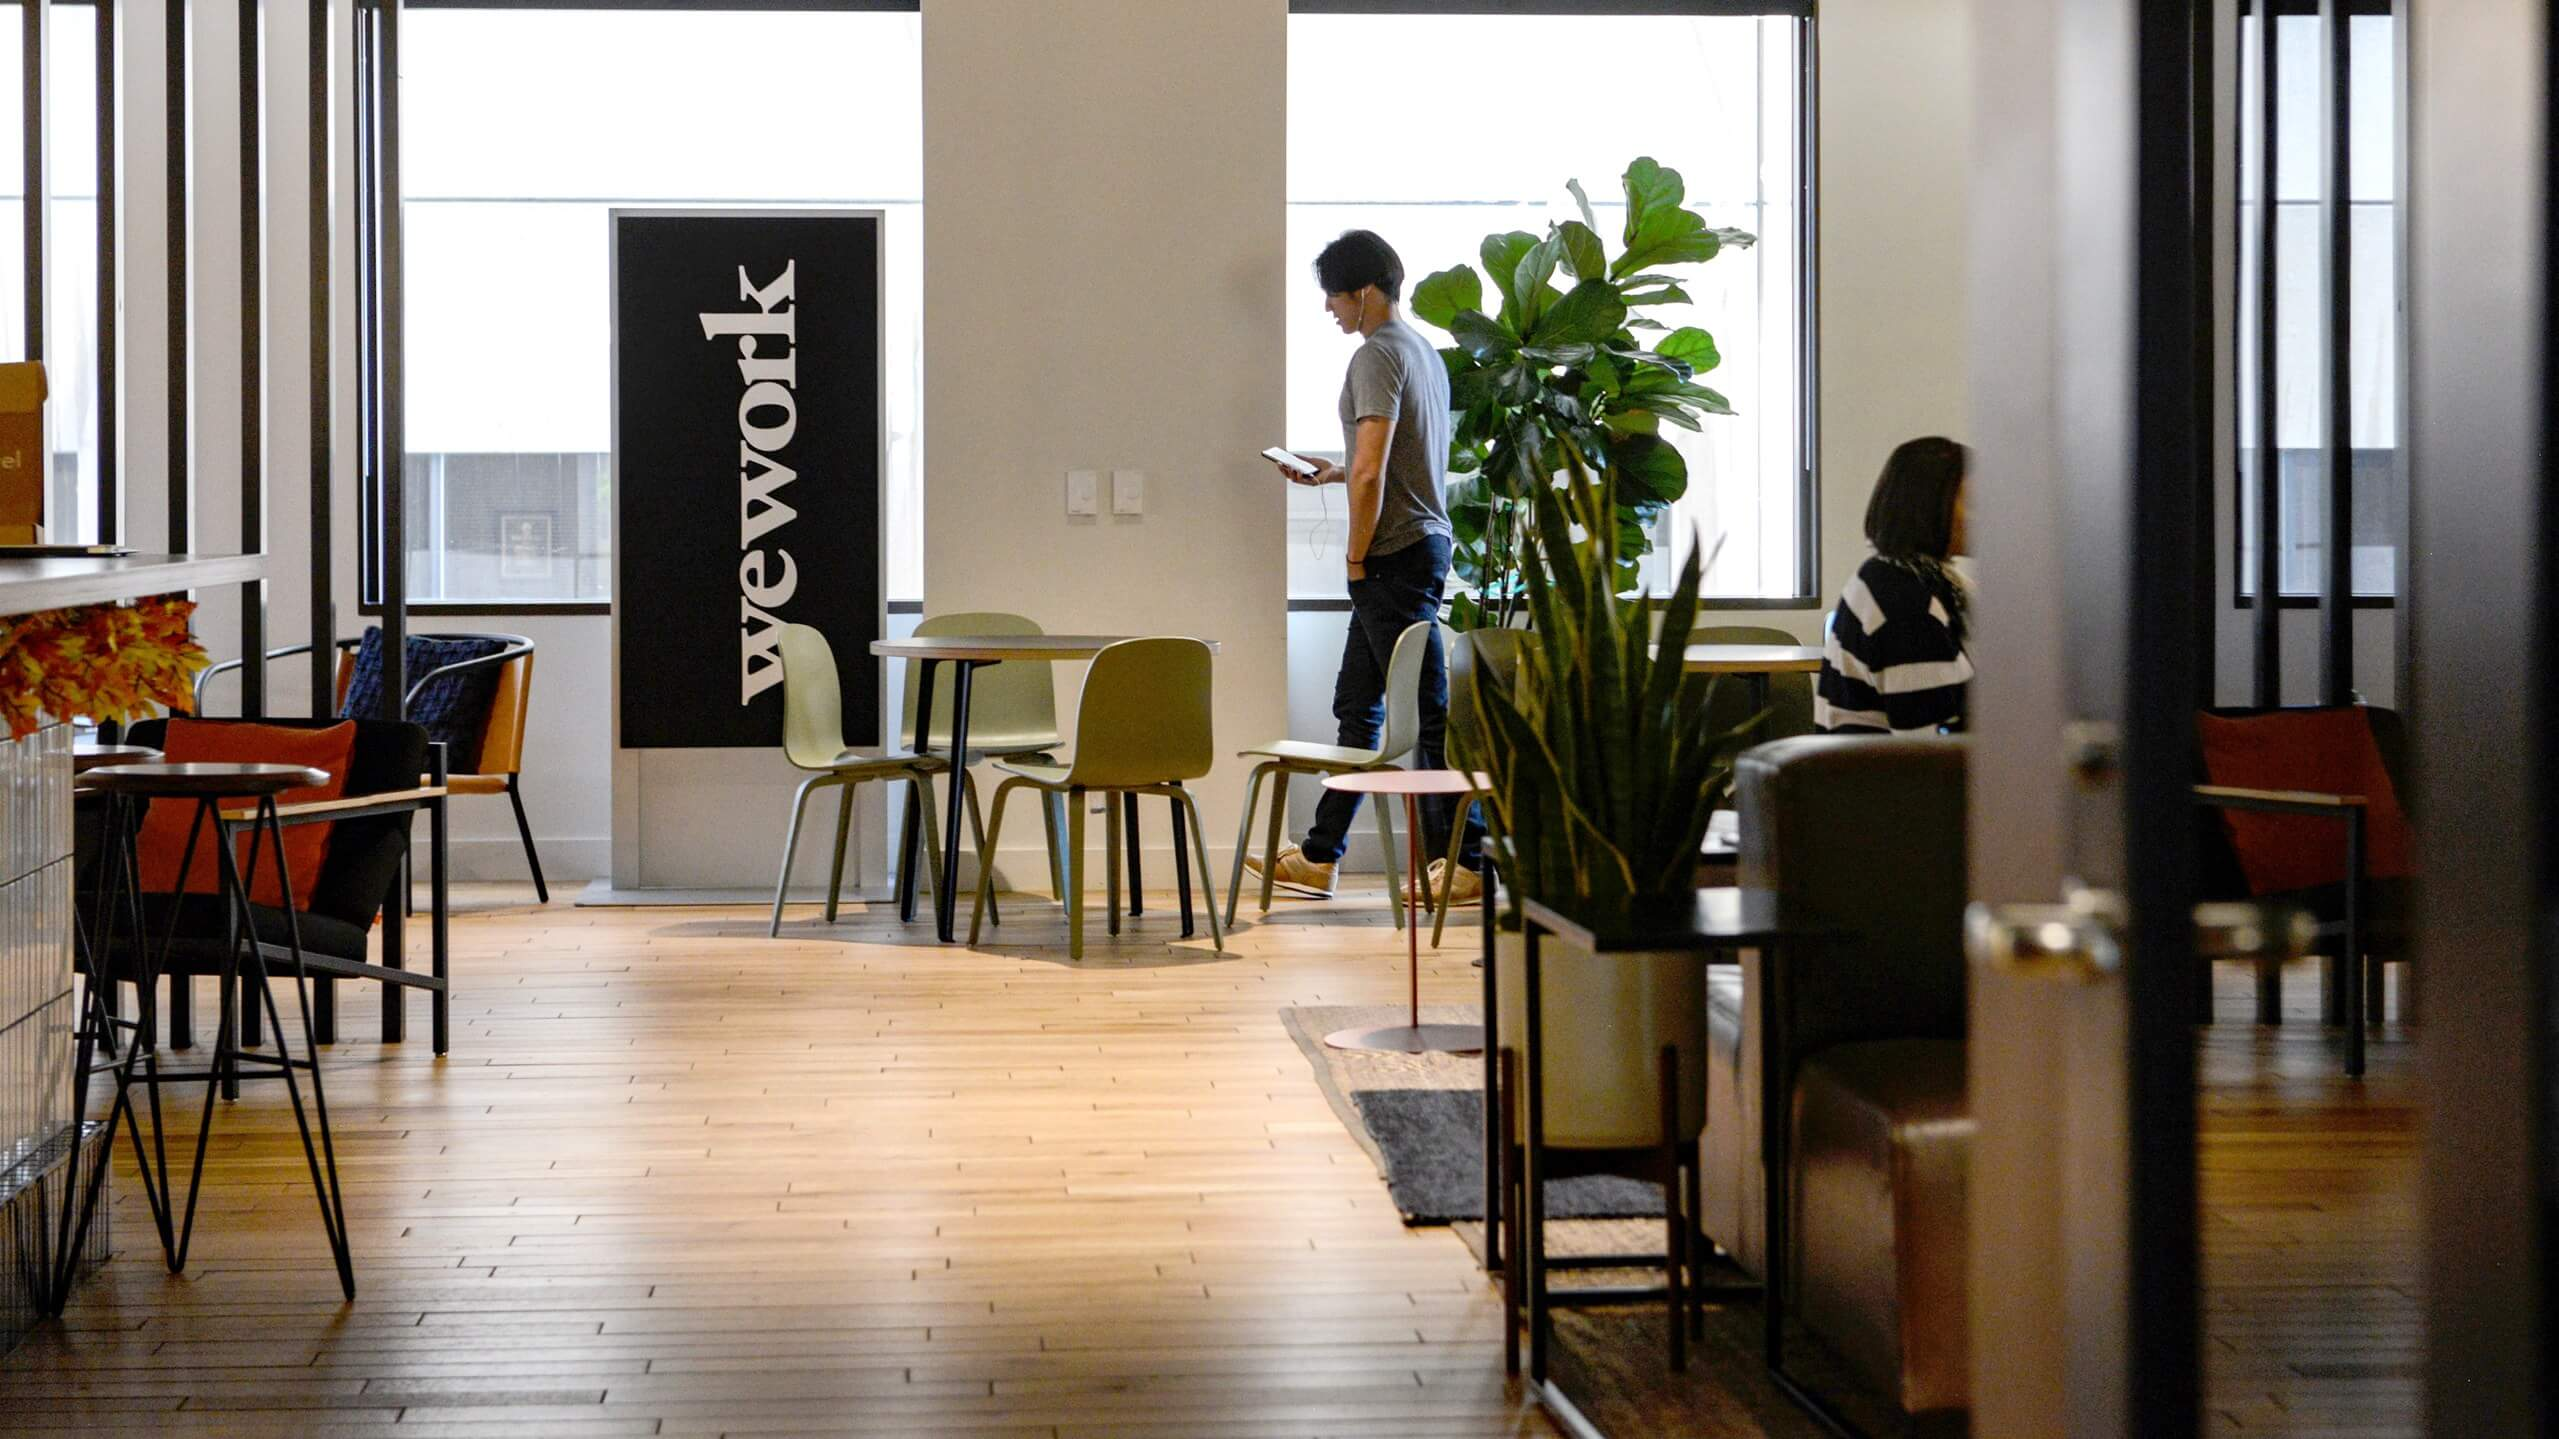 Inside one of the WeWork co-working spaces